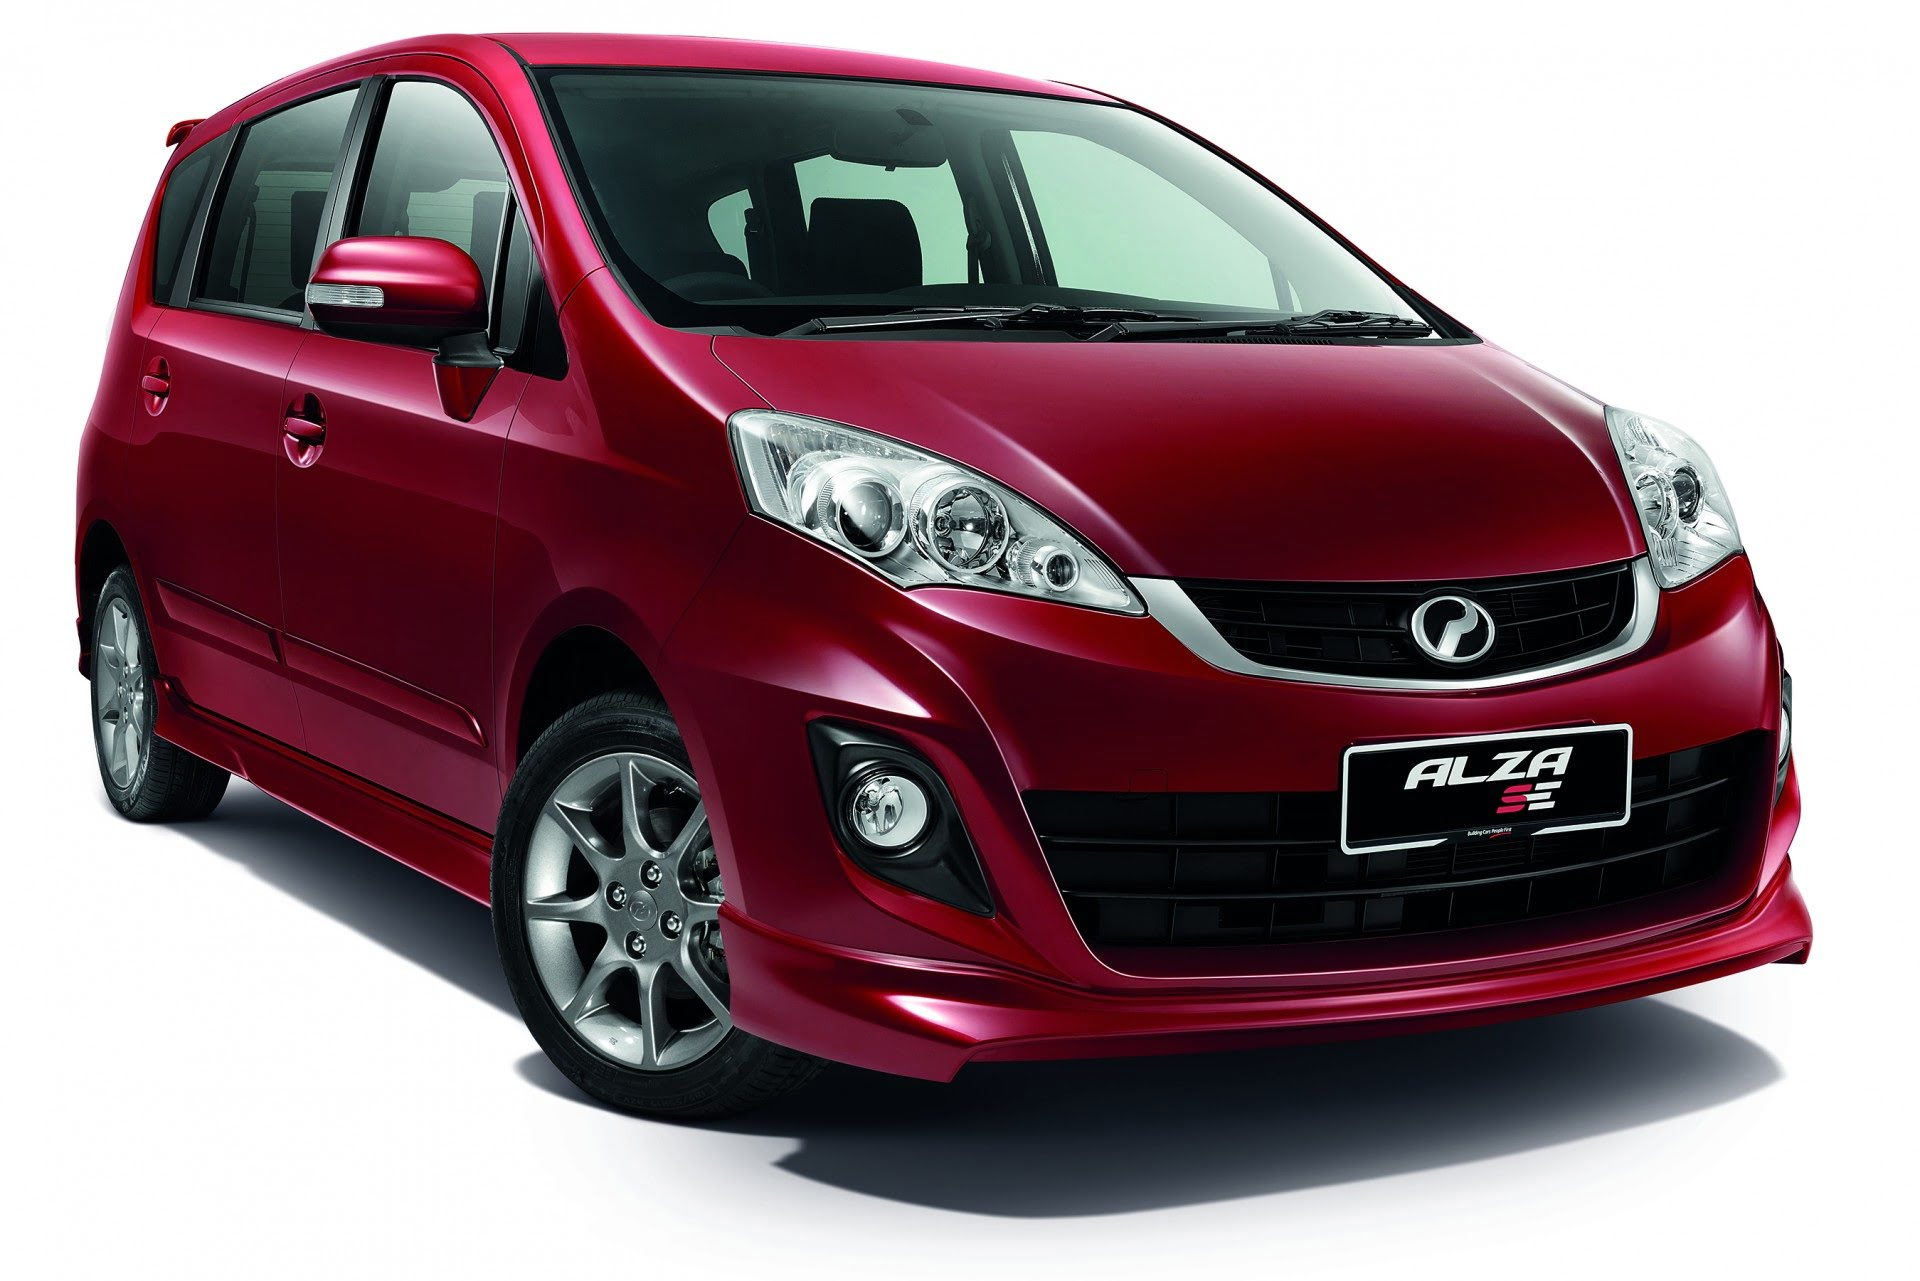 Top 5 pact MPVs Below RM100k For Your Growing Family